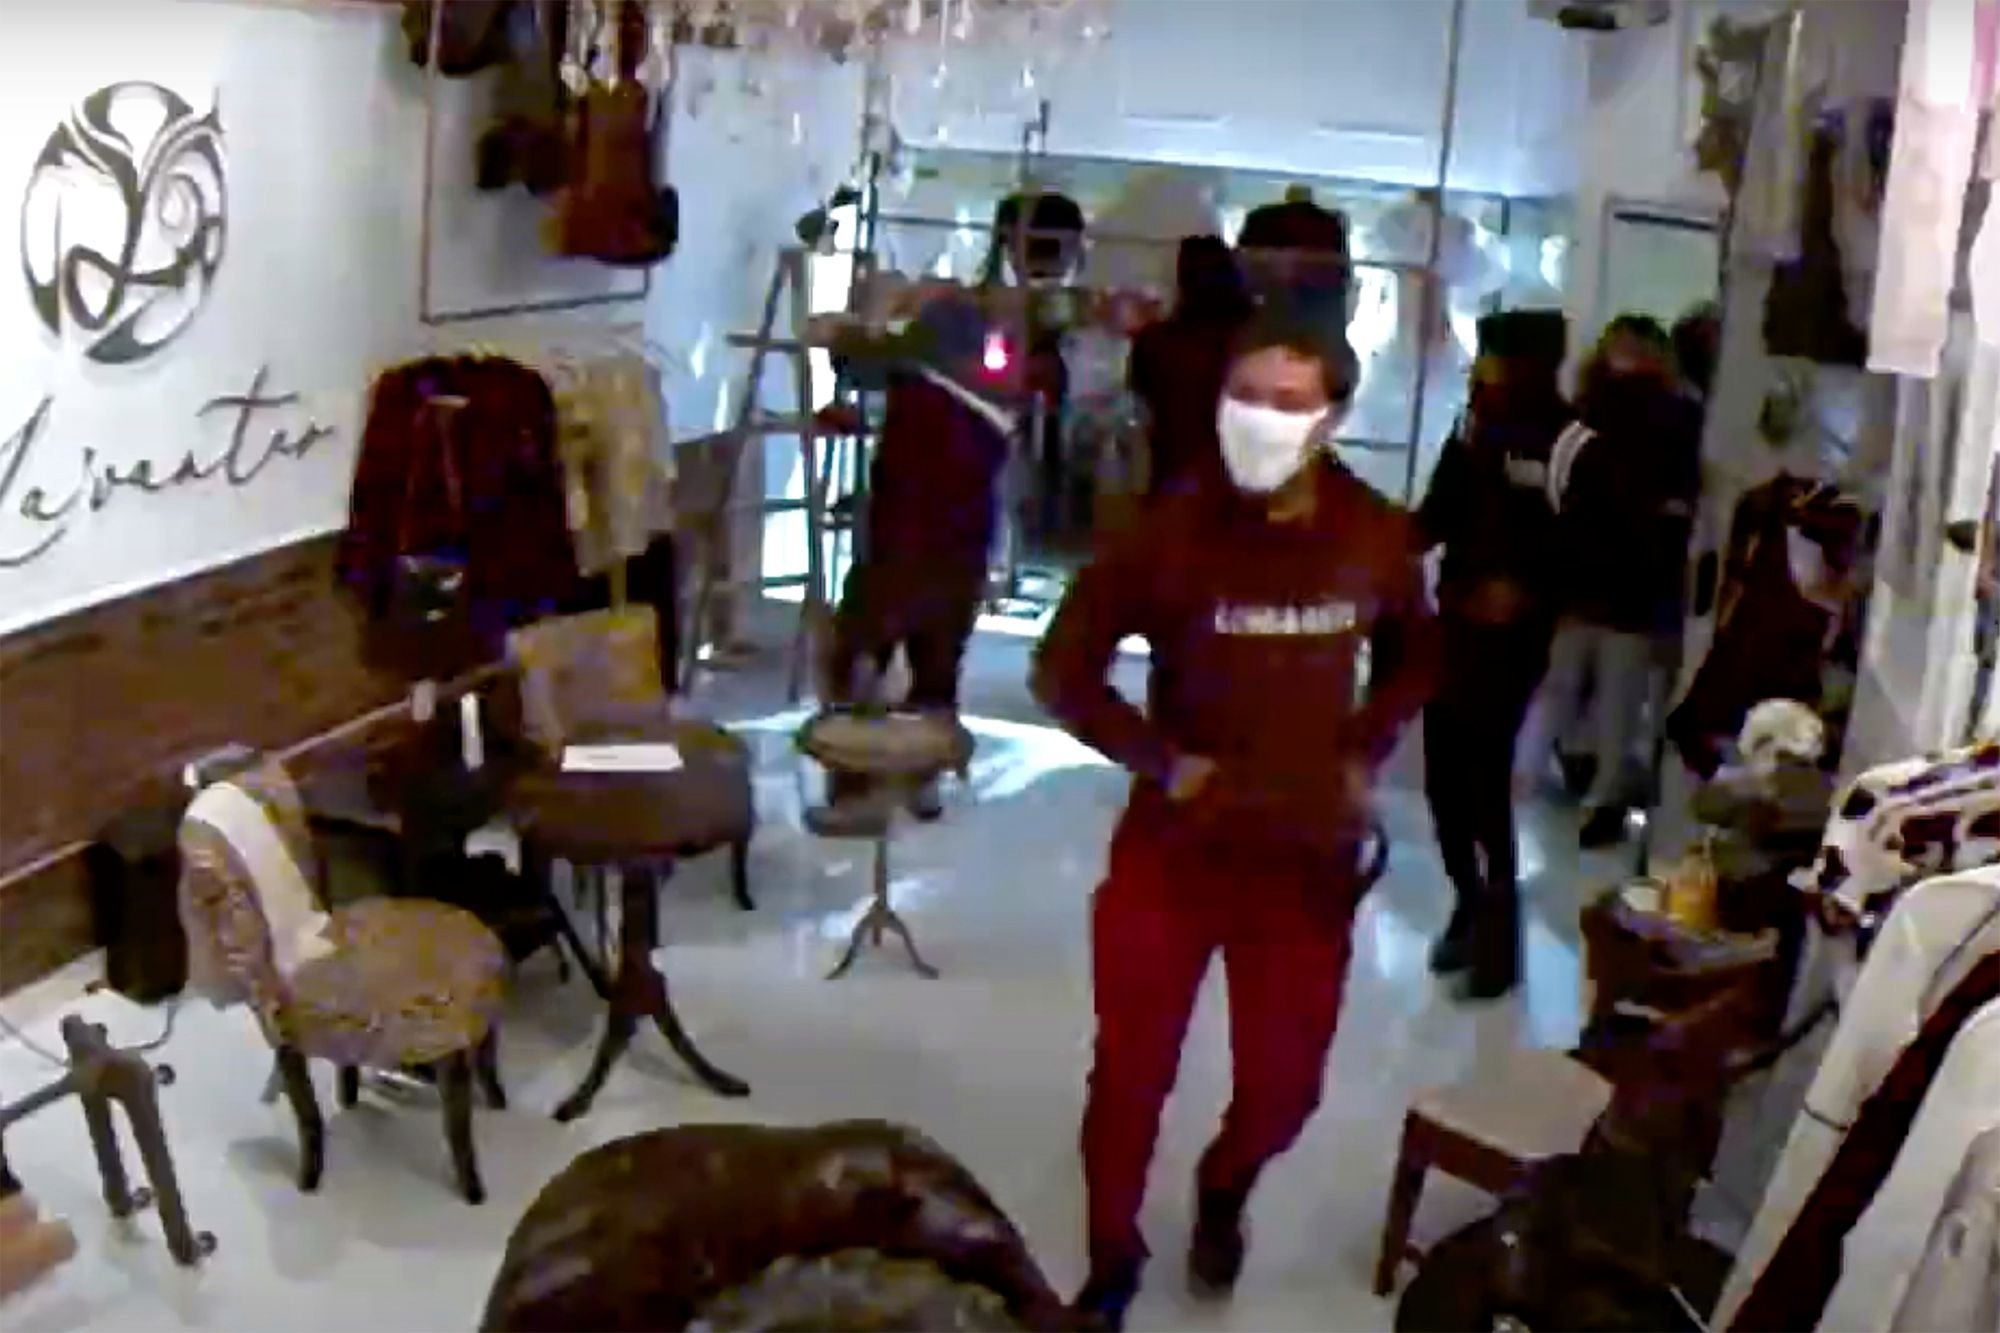 Looters ransack Philadelphia boutique amid protests